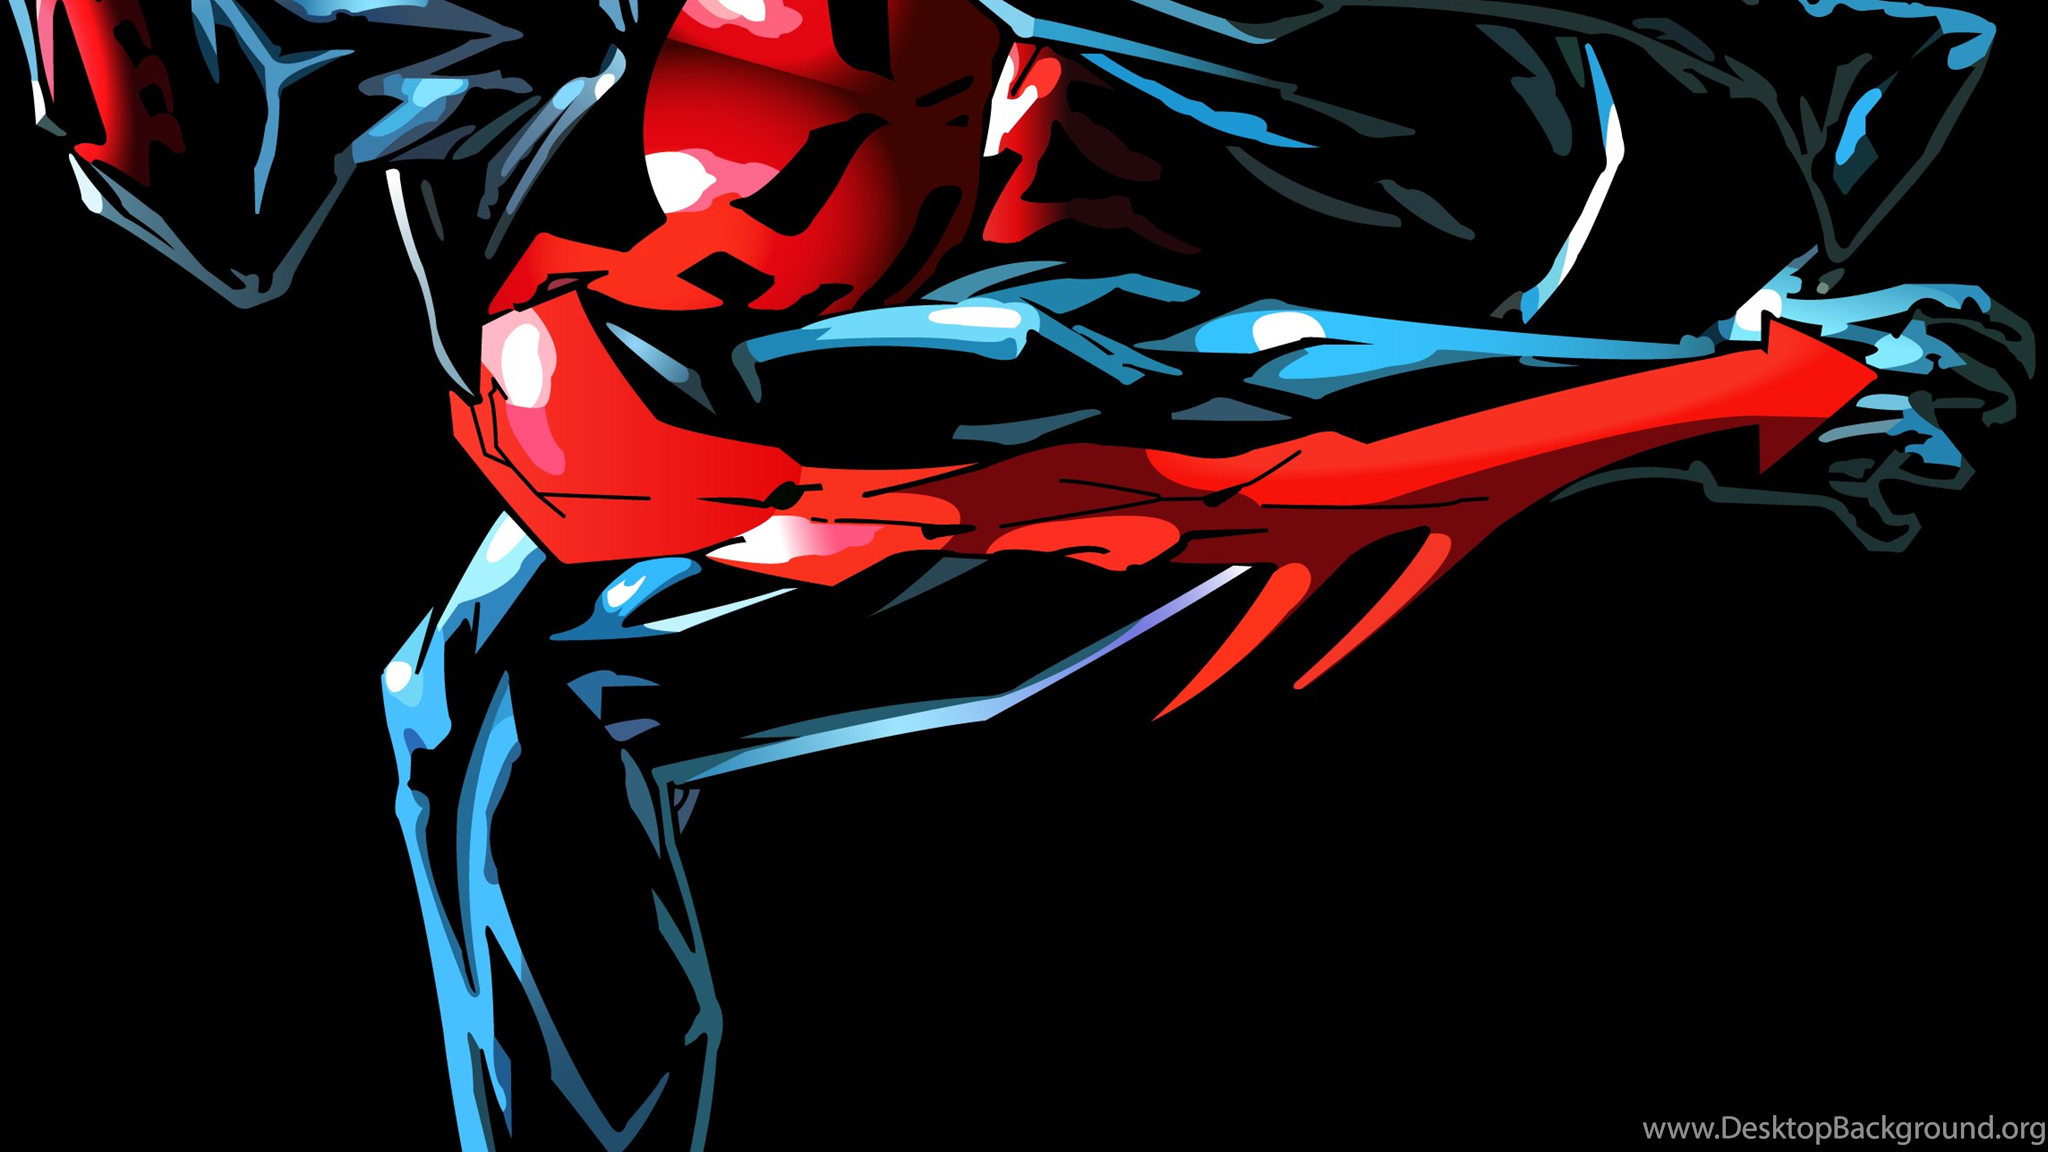 Cool Spiderman 2099 Wallpaper: Spiderman 2099 Wallpapers HD Desktop 13290 HD Wallpapers